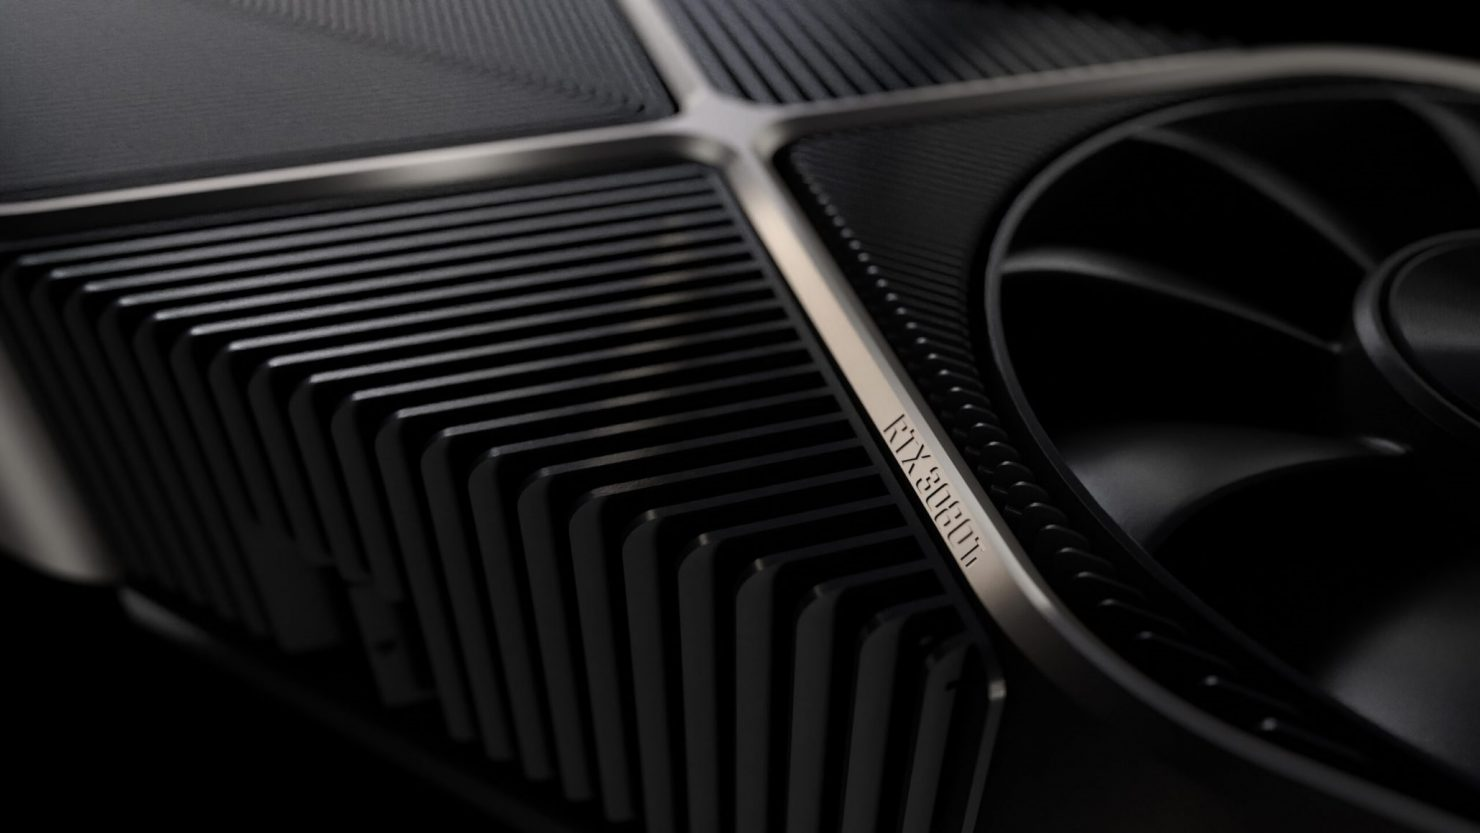 nvidia-geforce-rtx-3080-ti-custom-models-from-gigabyte-&-msi-listed-online-by-retailers,-prices-range-from-$1300-to-$2200-us